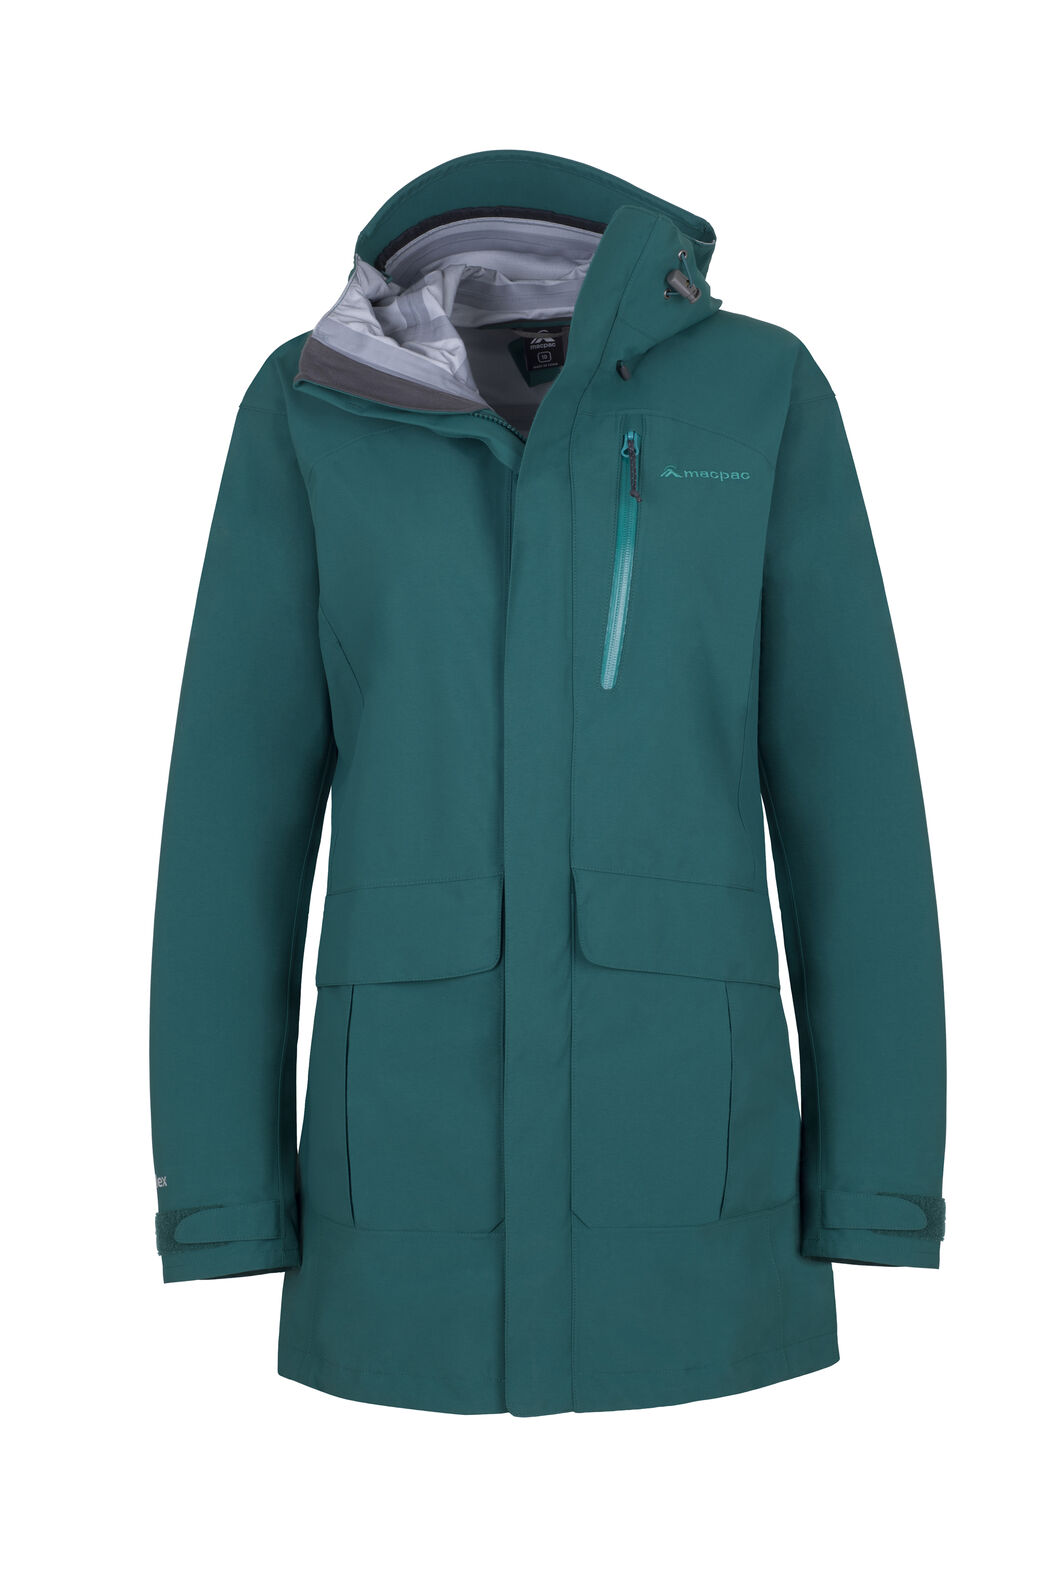 Macpac Copland Long Rain Jacket - Women's, Storm, hi-res